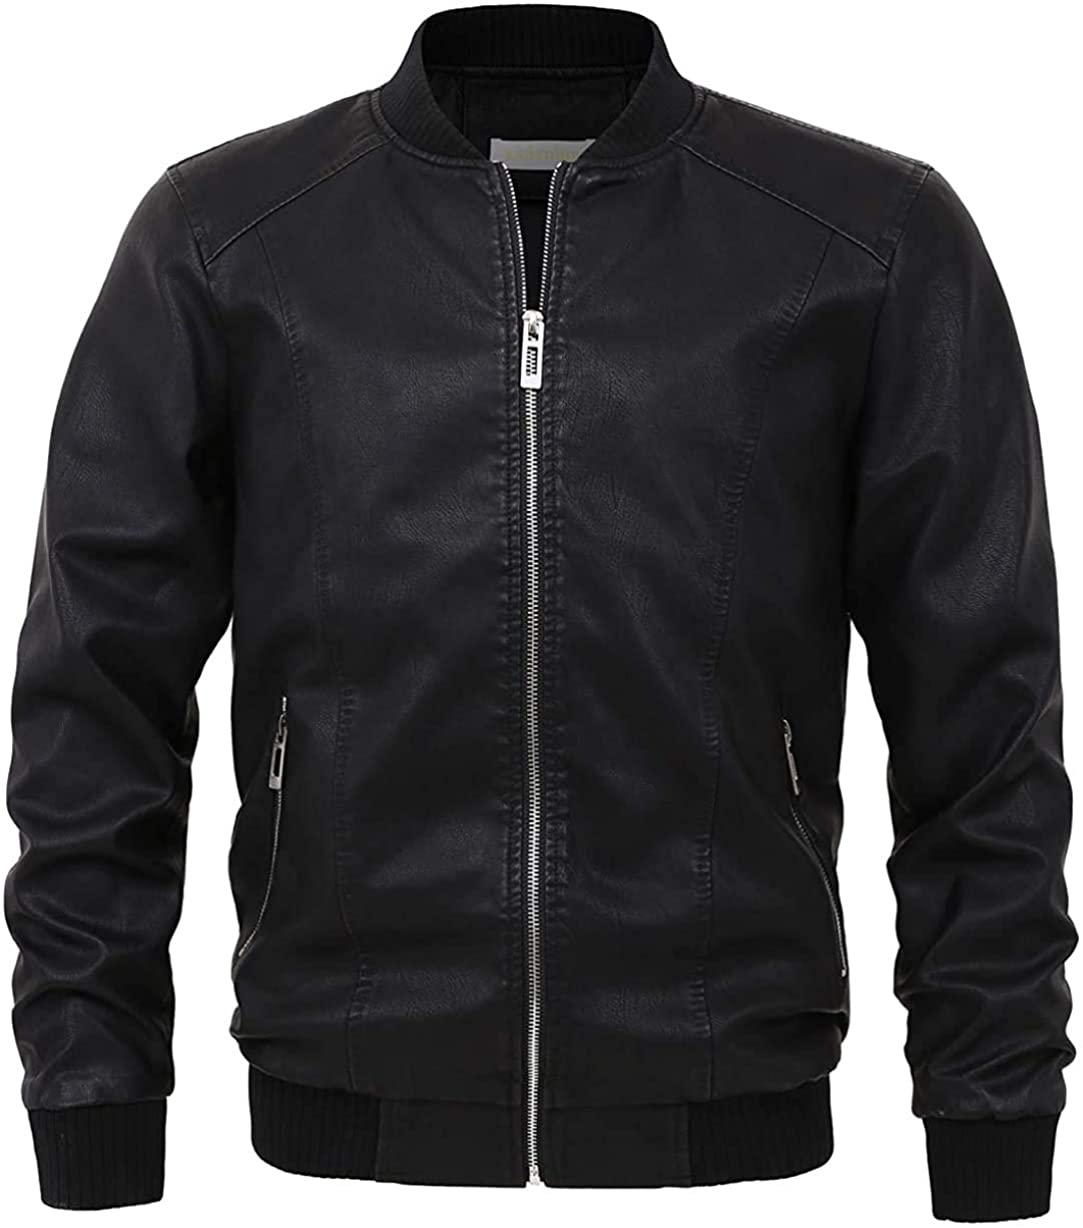 Men's Essential Sports Zip Lightweight Pu Leather Varsity Bomber Jacket,Black,Large